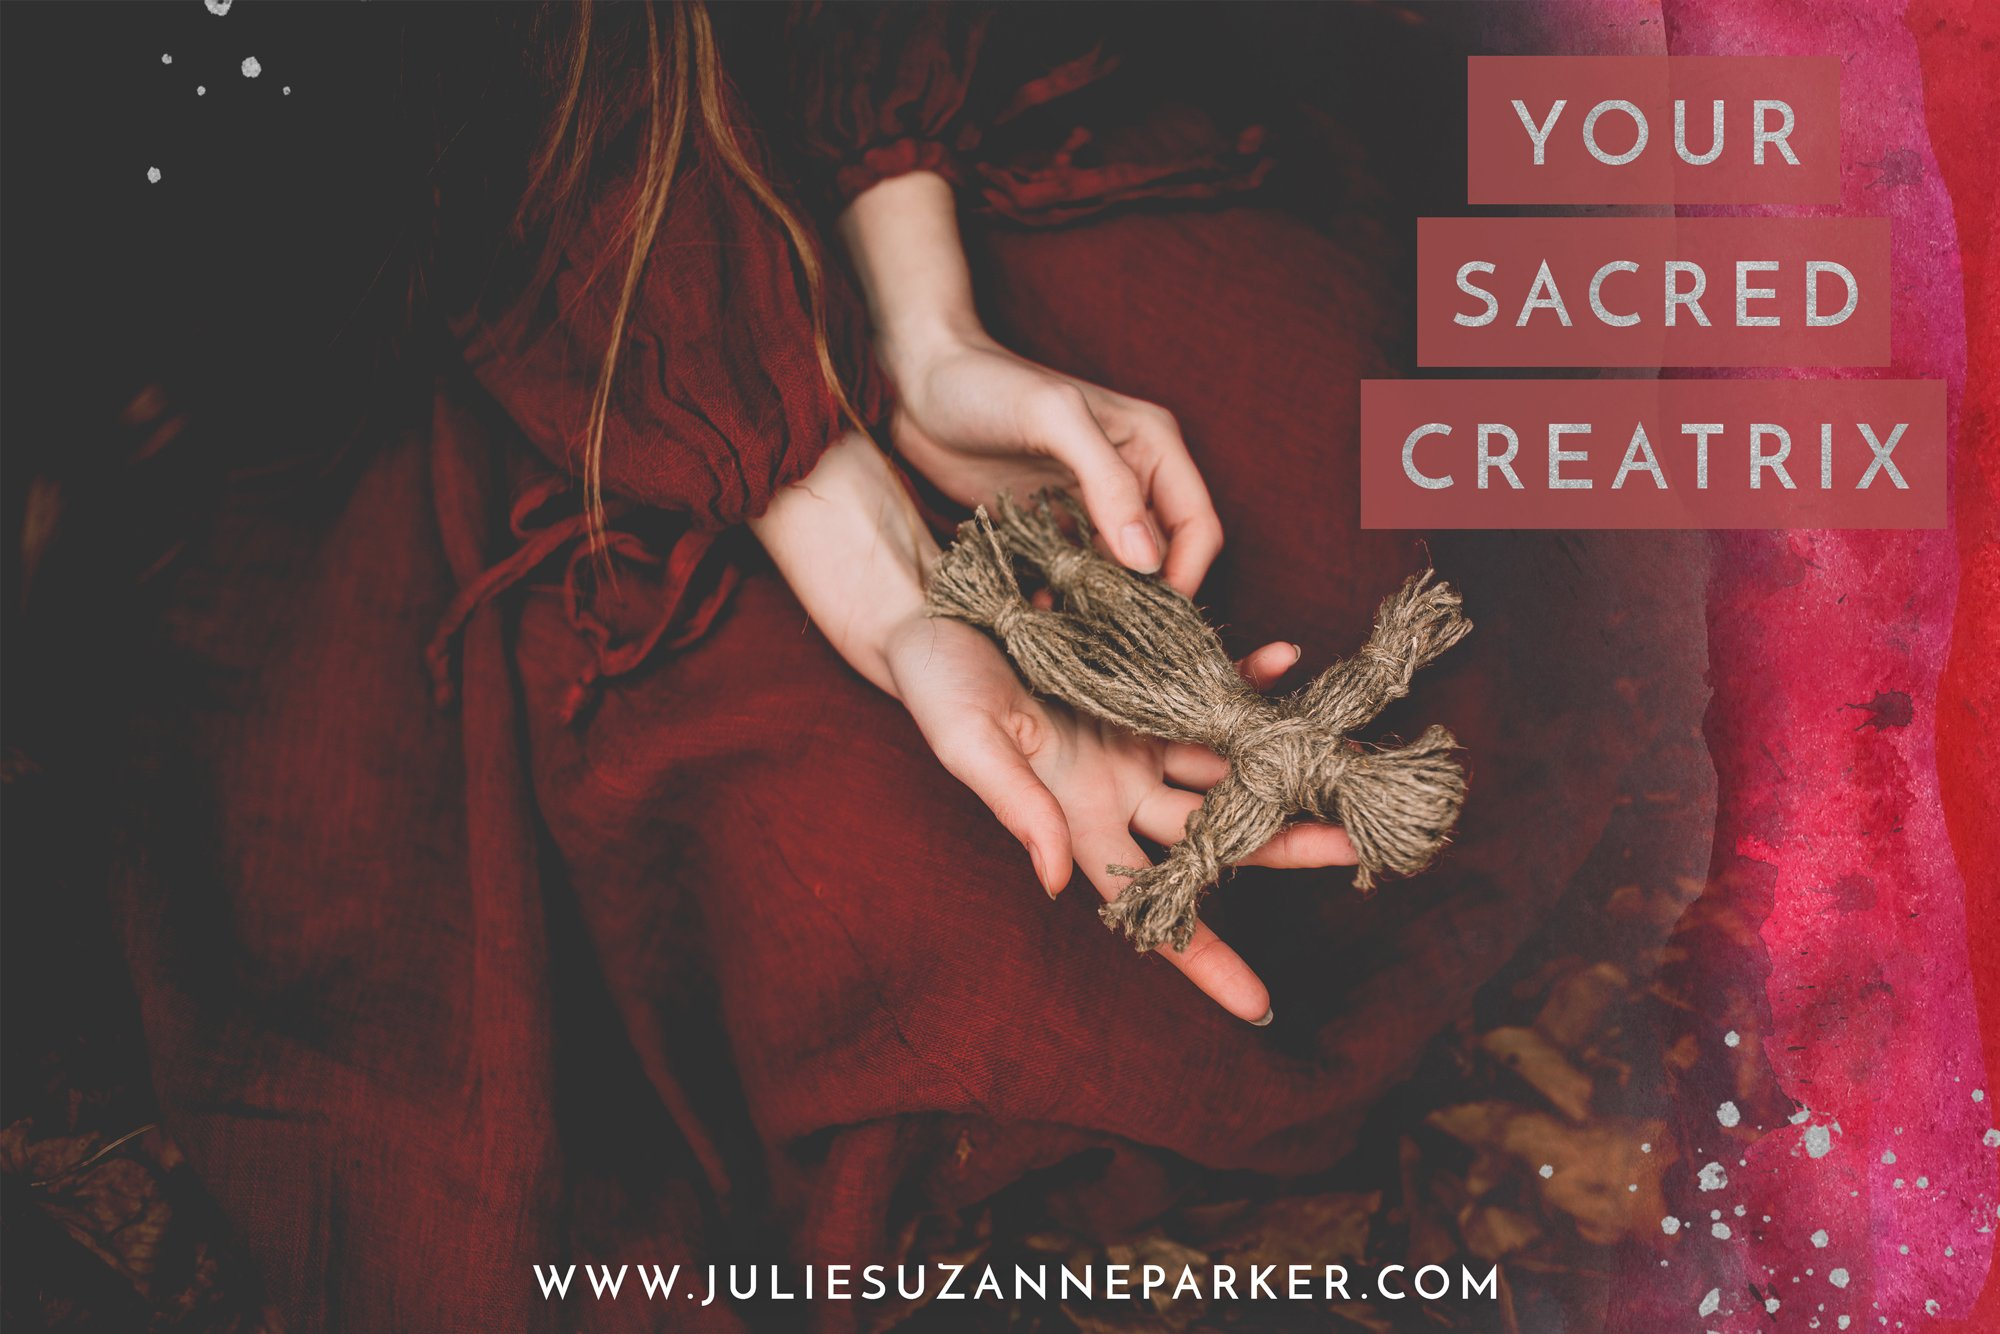 Your Sacred Creatrix